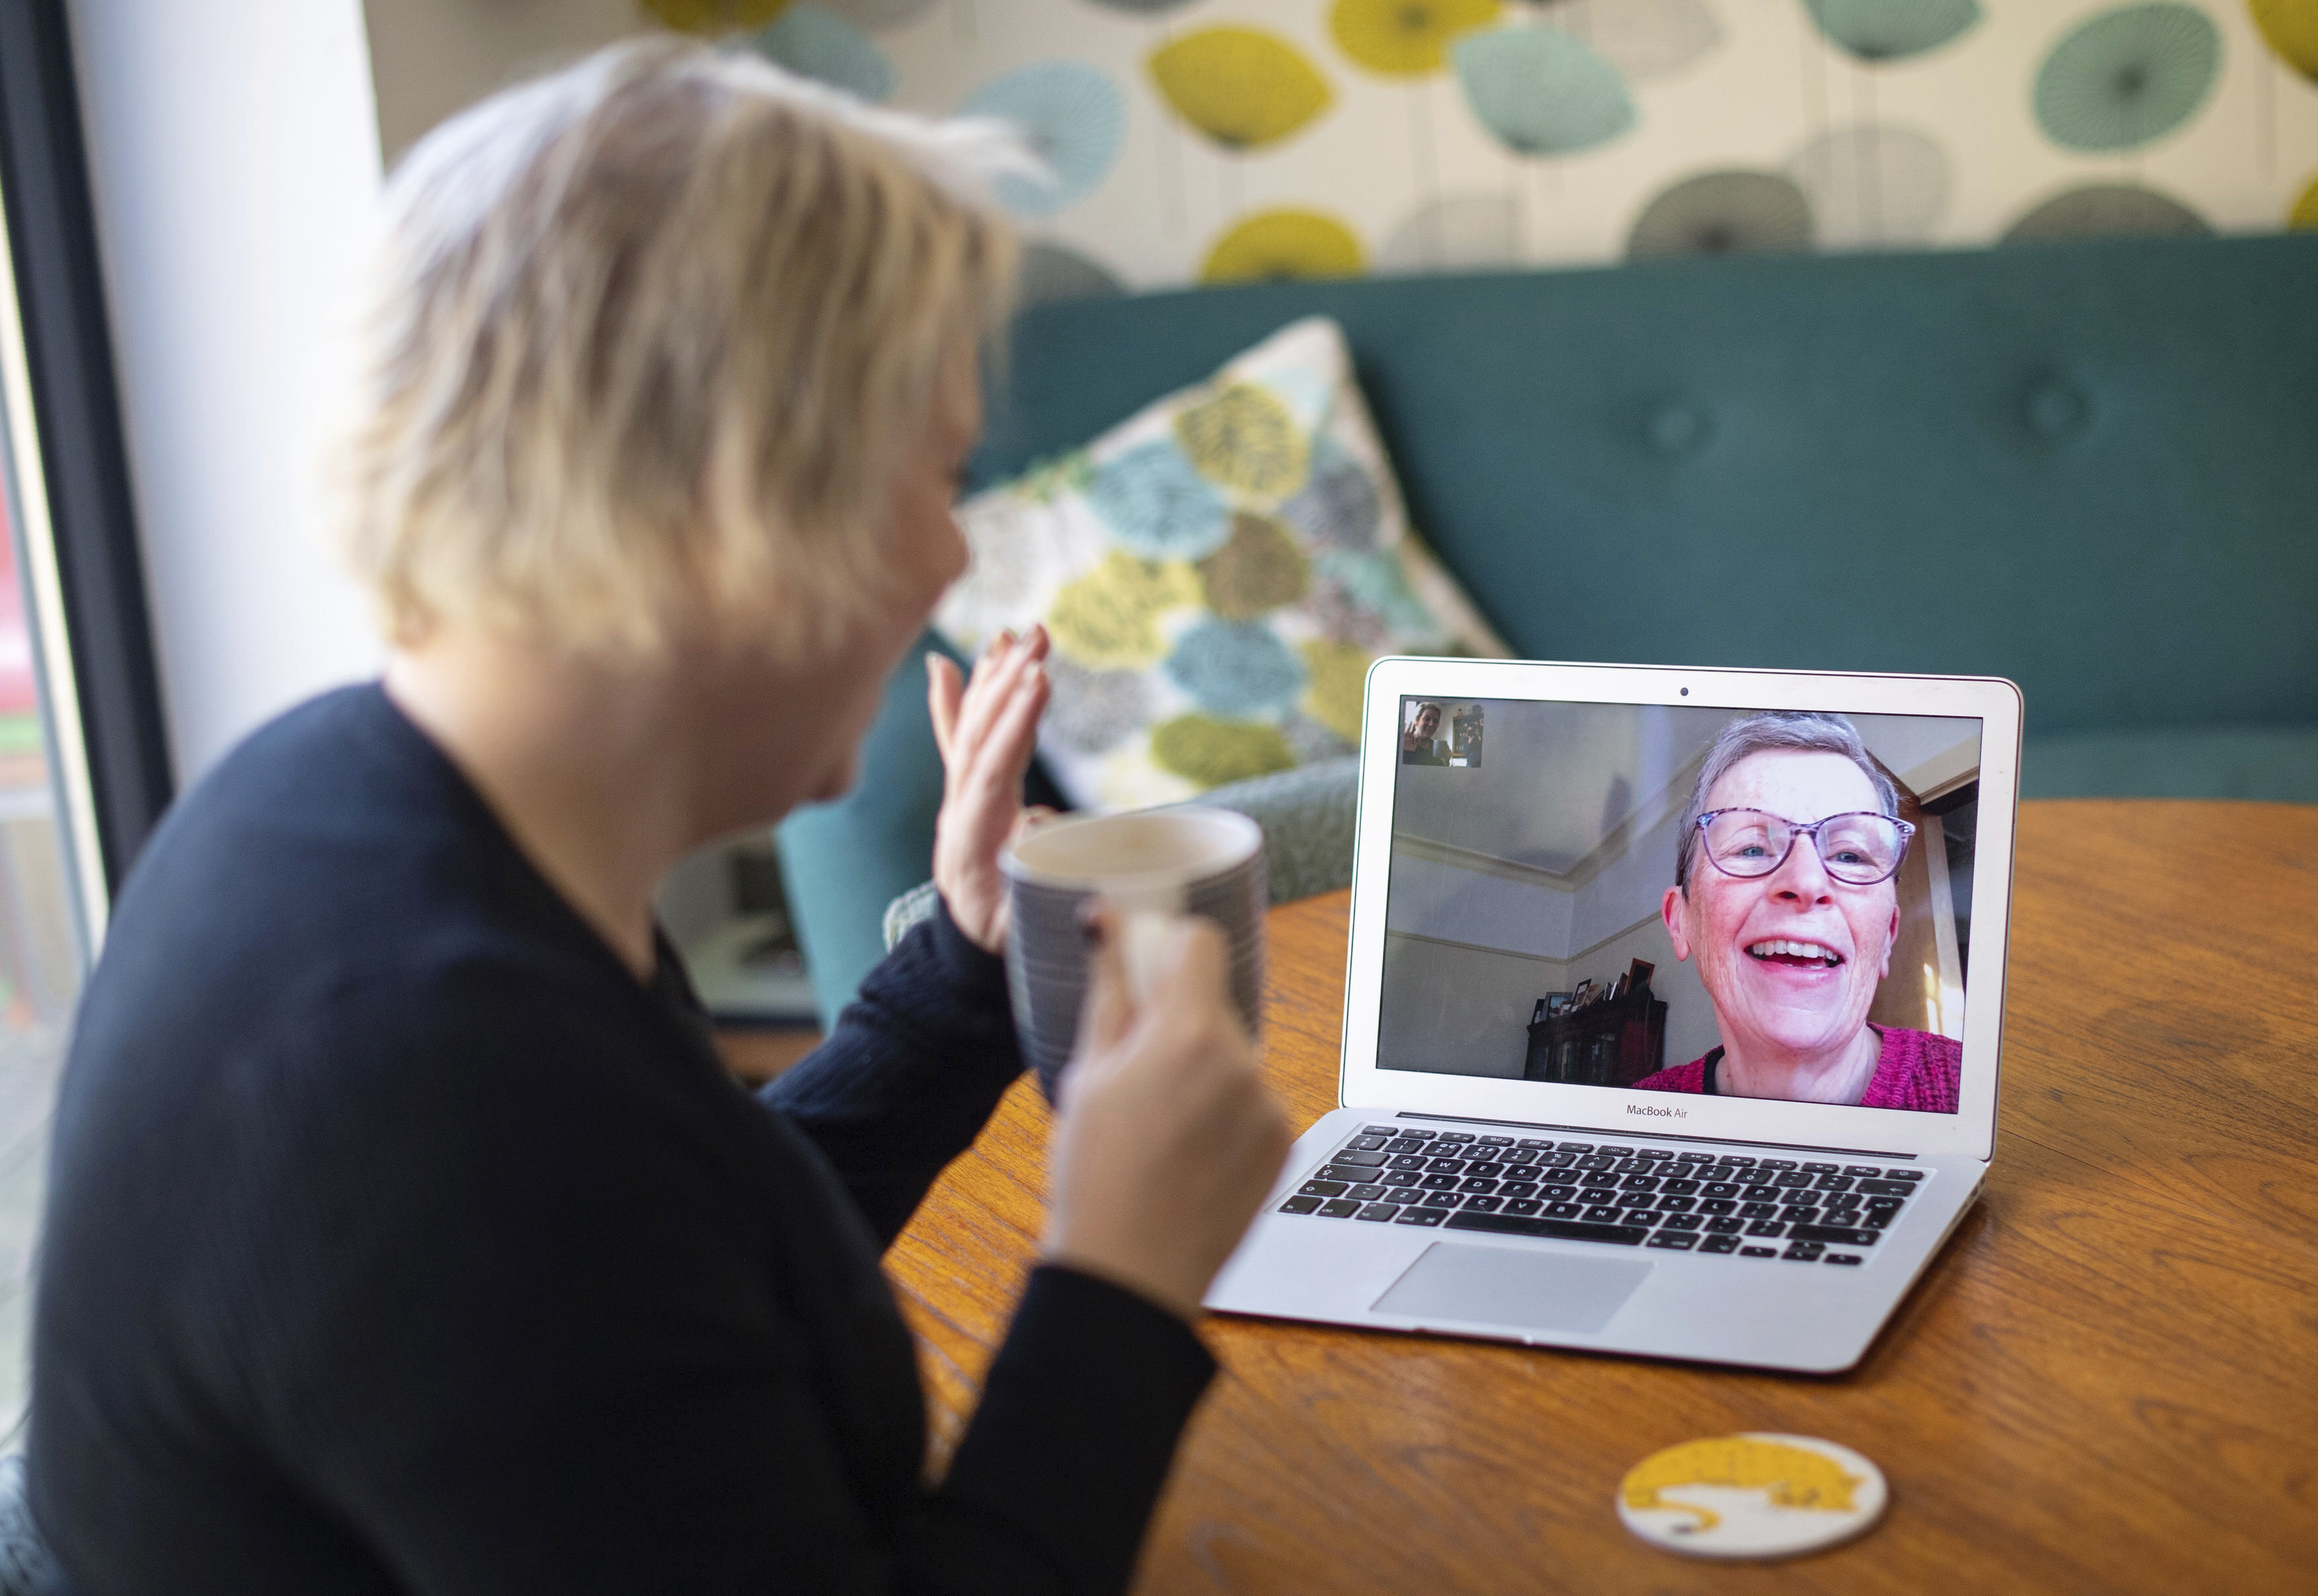 Helen Walters, left, talks to her mother Gillian using video calling, as people find alternative ways to celebrate Mother's Day to limit the potential spread of COVID-19 coronavirus, in London, on March 22, 2020.